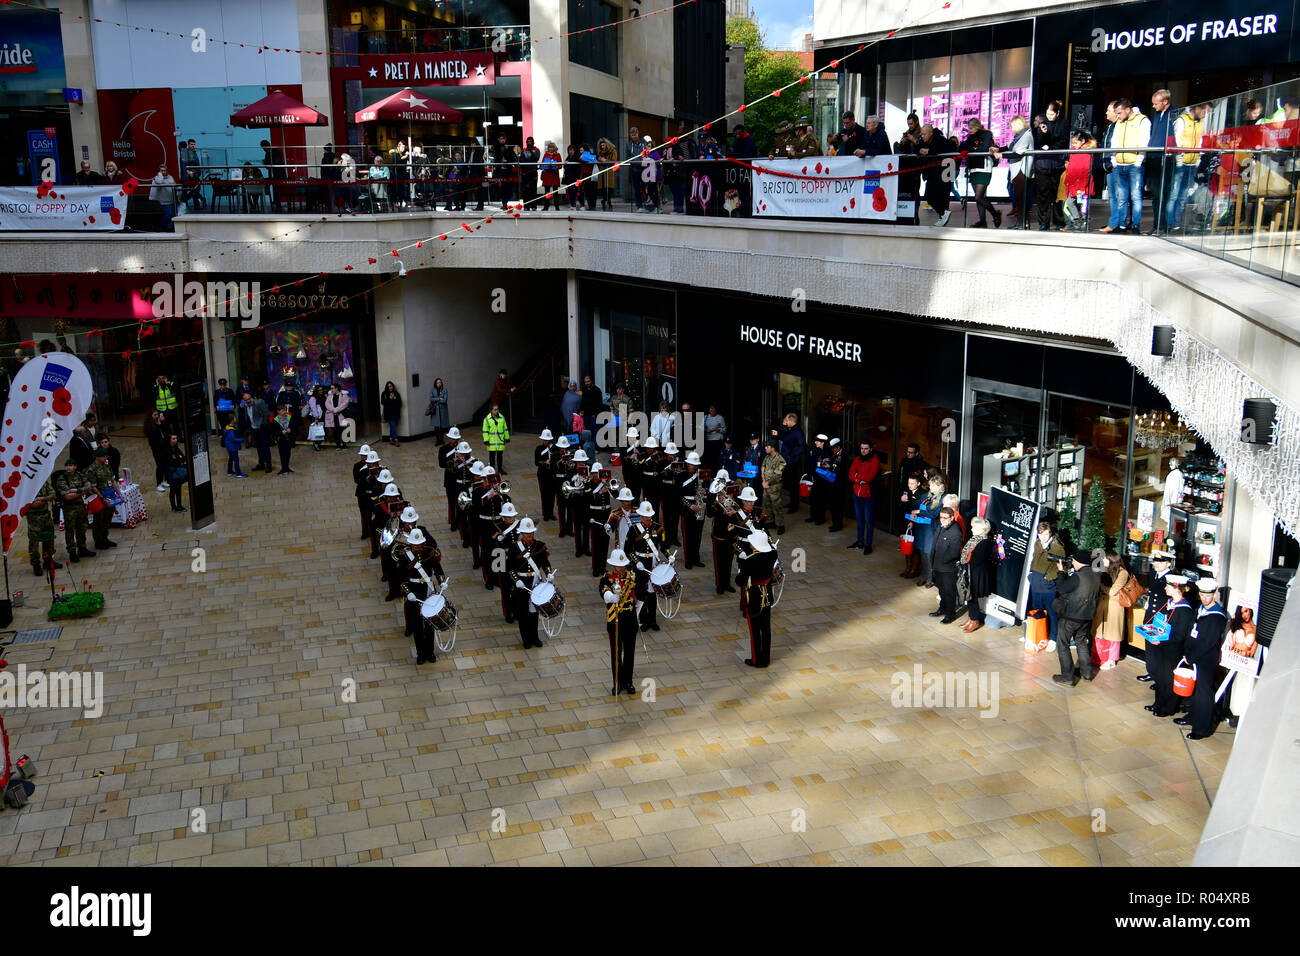 Bristol, UK. 1st Nov 2018. Lest we forget. Band of the Royal Marines seen at Cabot Circus Shopping Center. Robert Timoney/Alamy/live/News - Stock Image